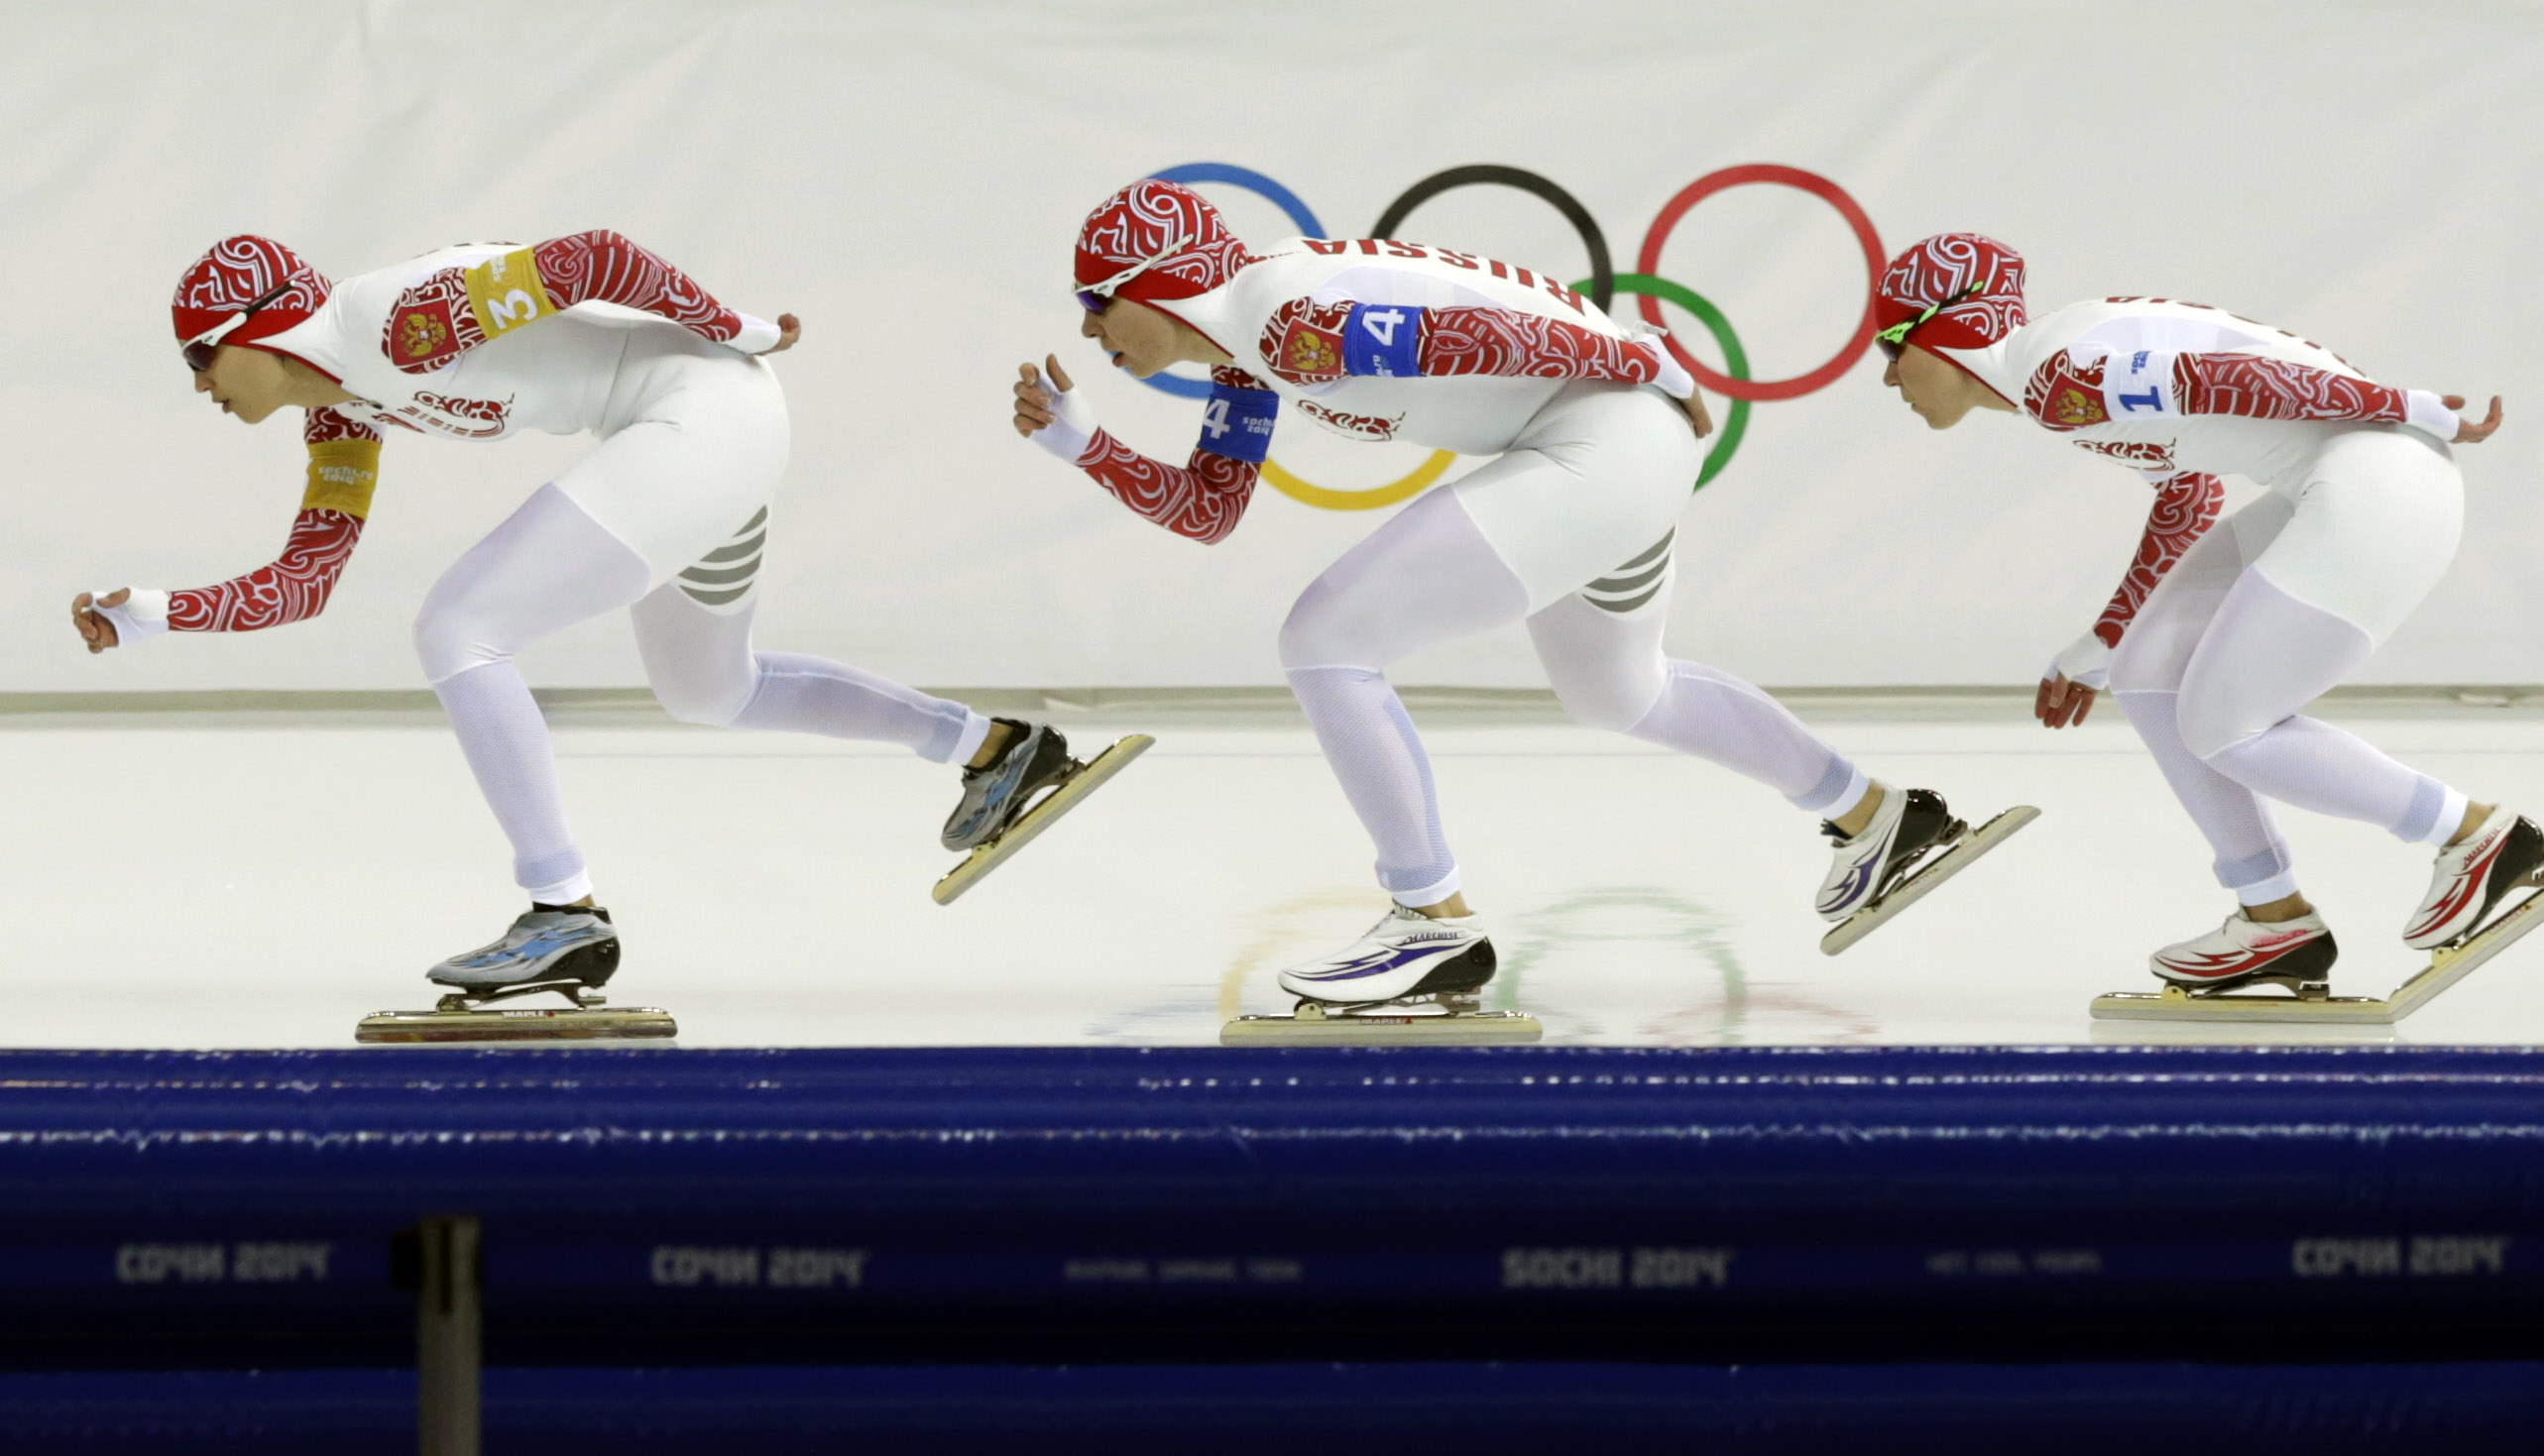 Speedskaters from Russia, left to right, Yekaterina Shikhova, Yulia Skokova, and Olga Graf compete in the women's speedskating team pursuit semifinals at the Adler Arena Skating Center at the 2014 Winter Olympics, Saturday, Feb. 22, 2014, in Sochi, Russia. (AP Photo/Matt Dunham)